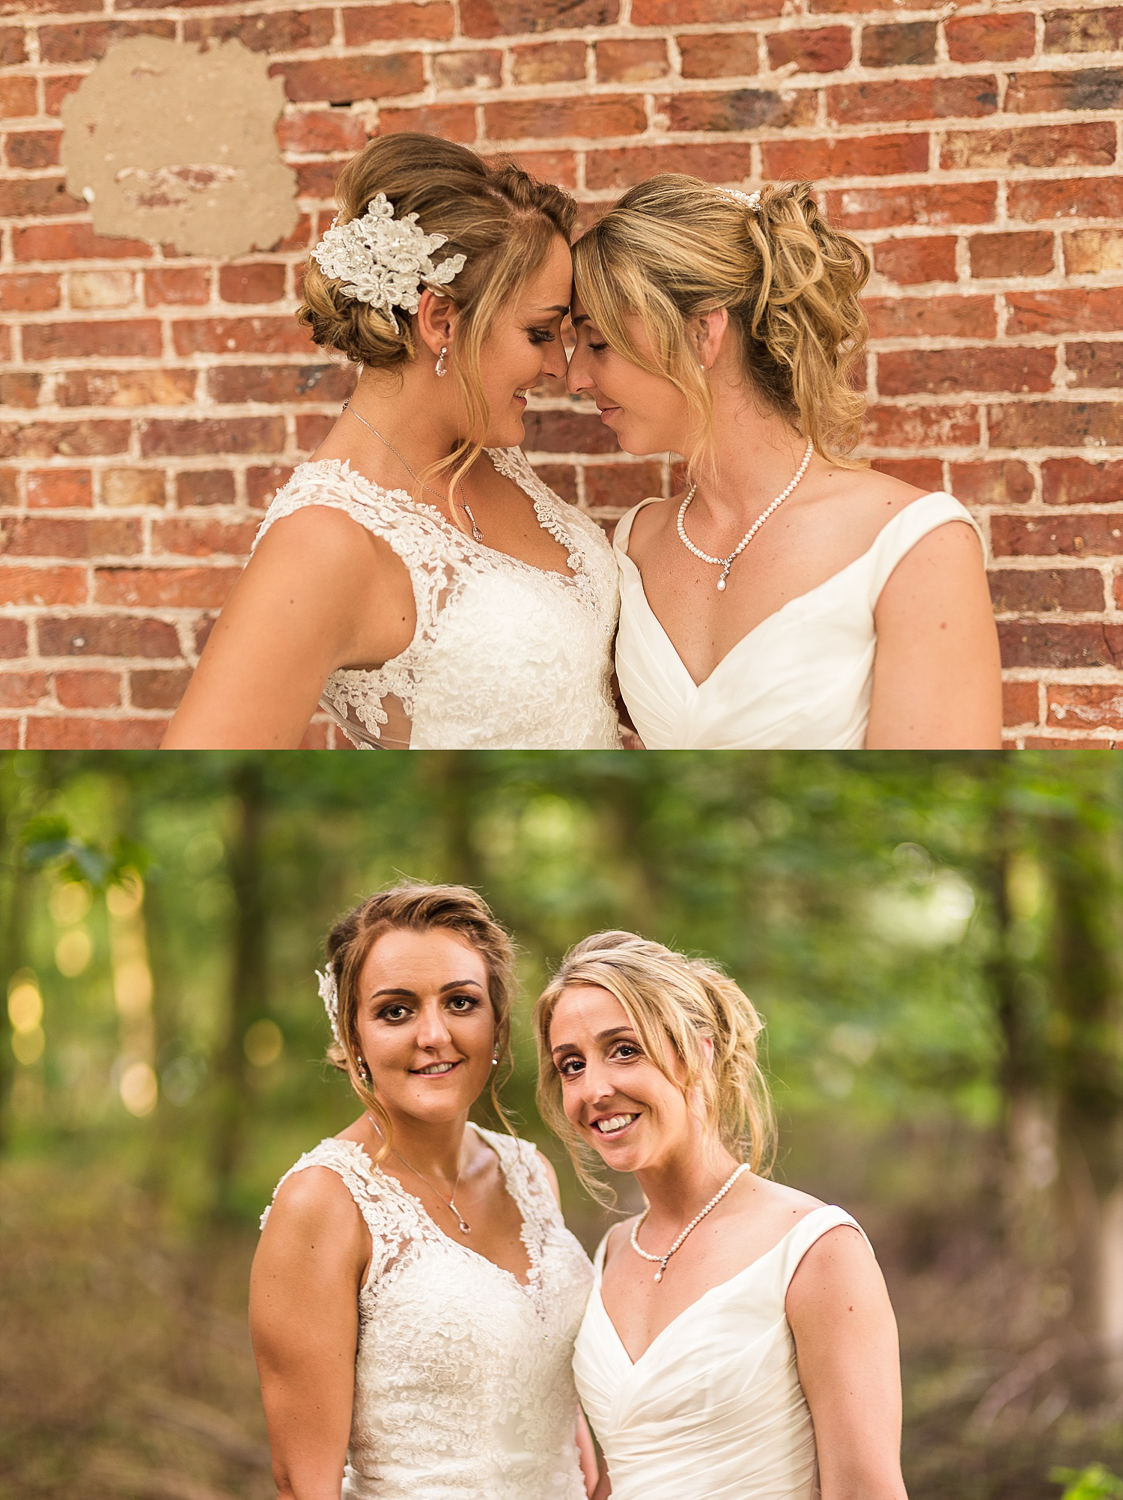 Brides have a walk during LGBT wedding